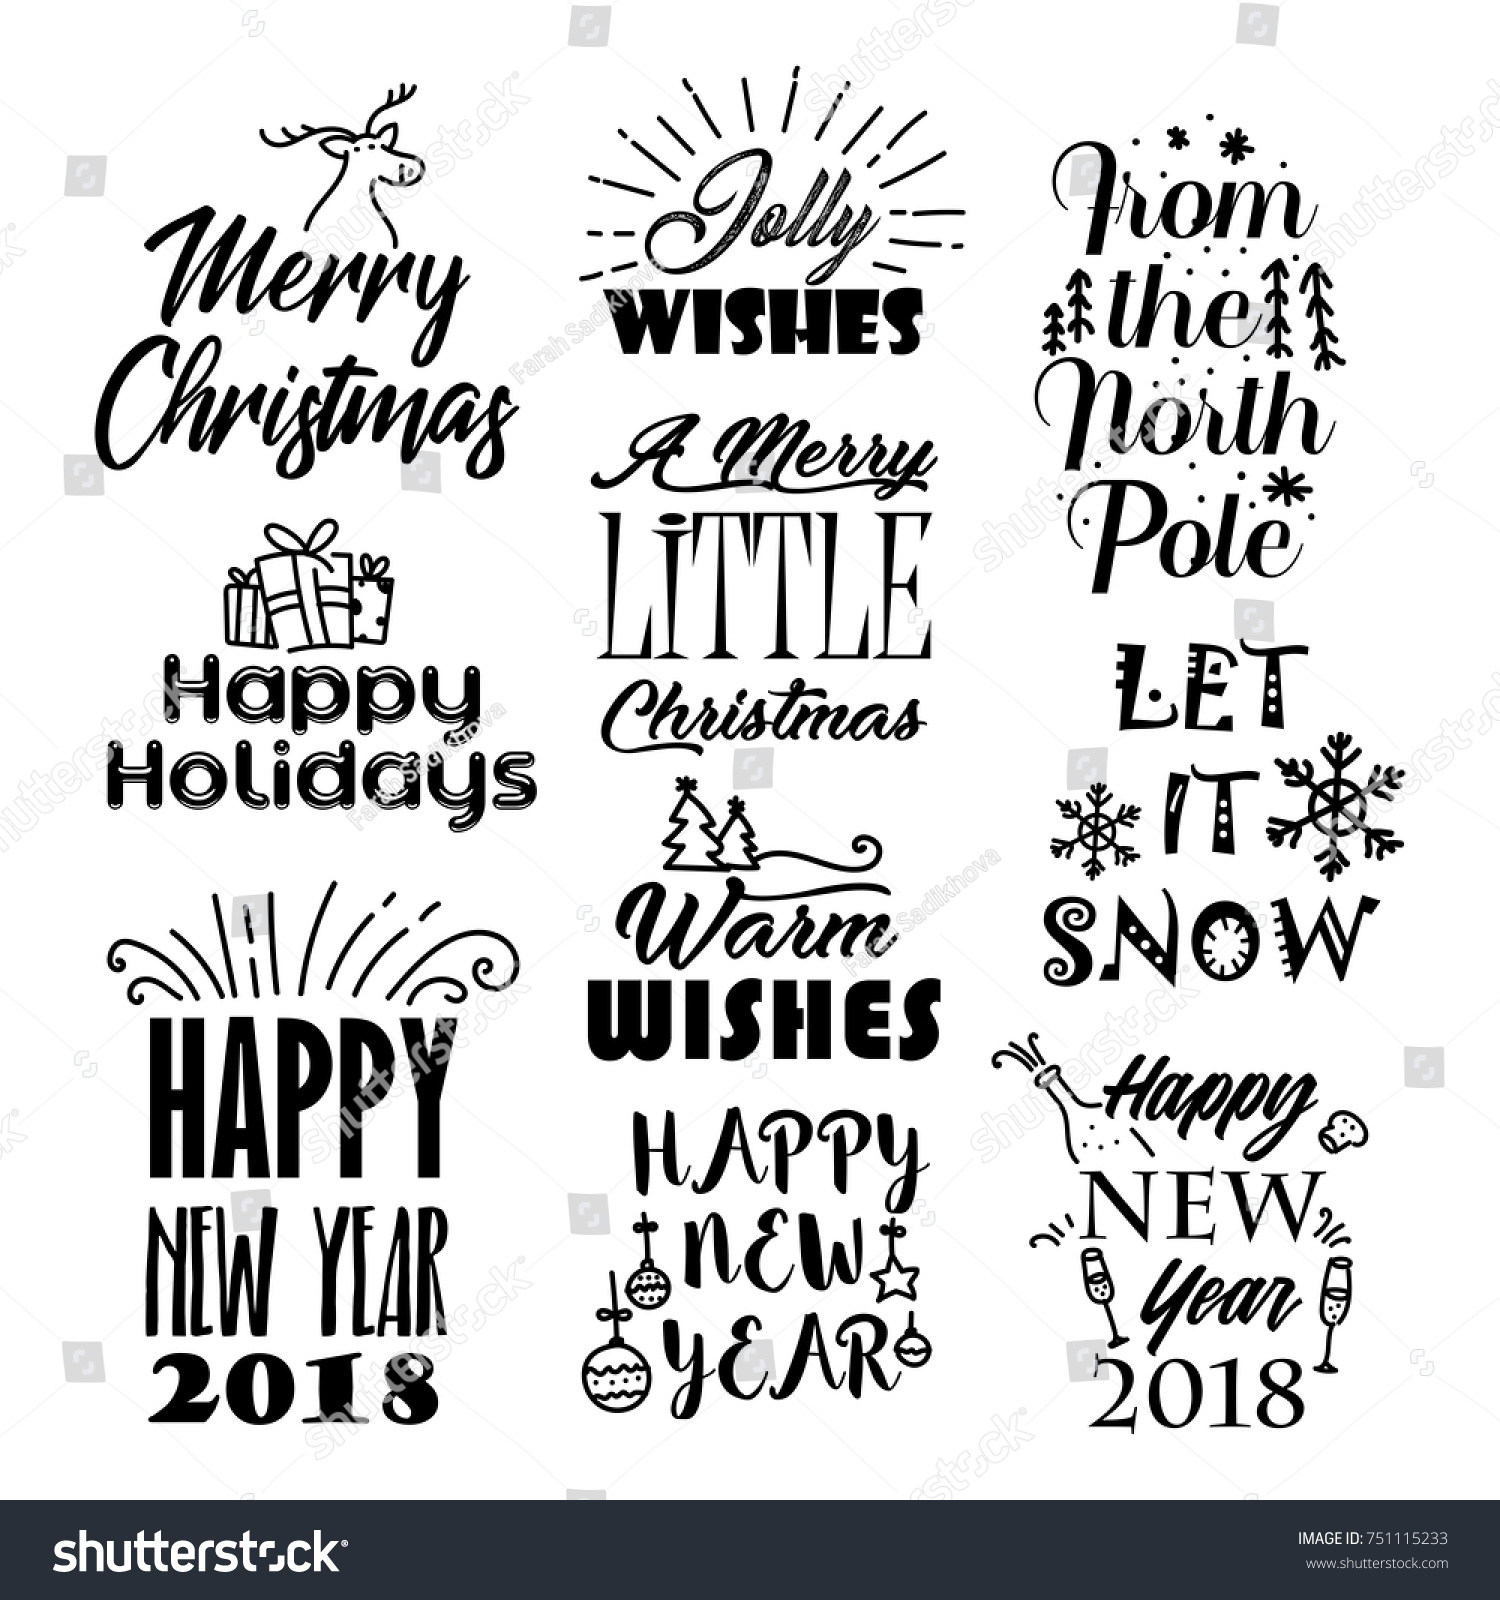 Christmas Happy New Year Wishes Stickers Stock Vector (Royalty Free ...